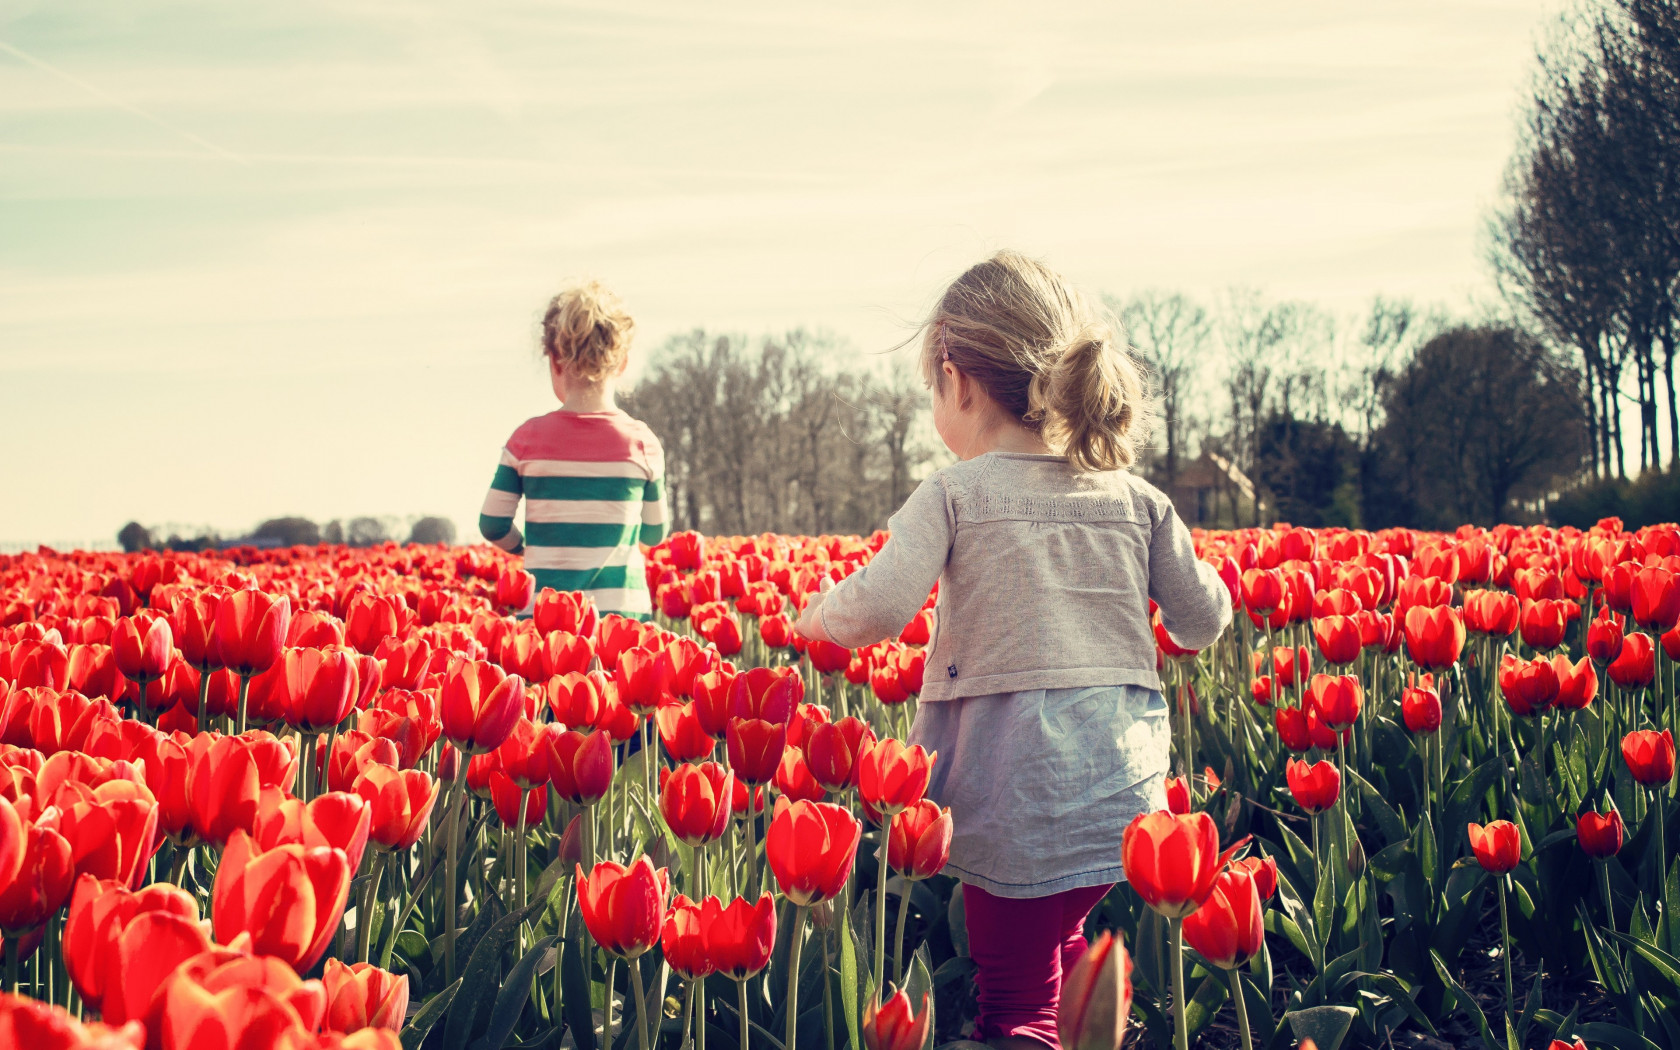 Children in the land with tulips wallpaper 1680x1050